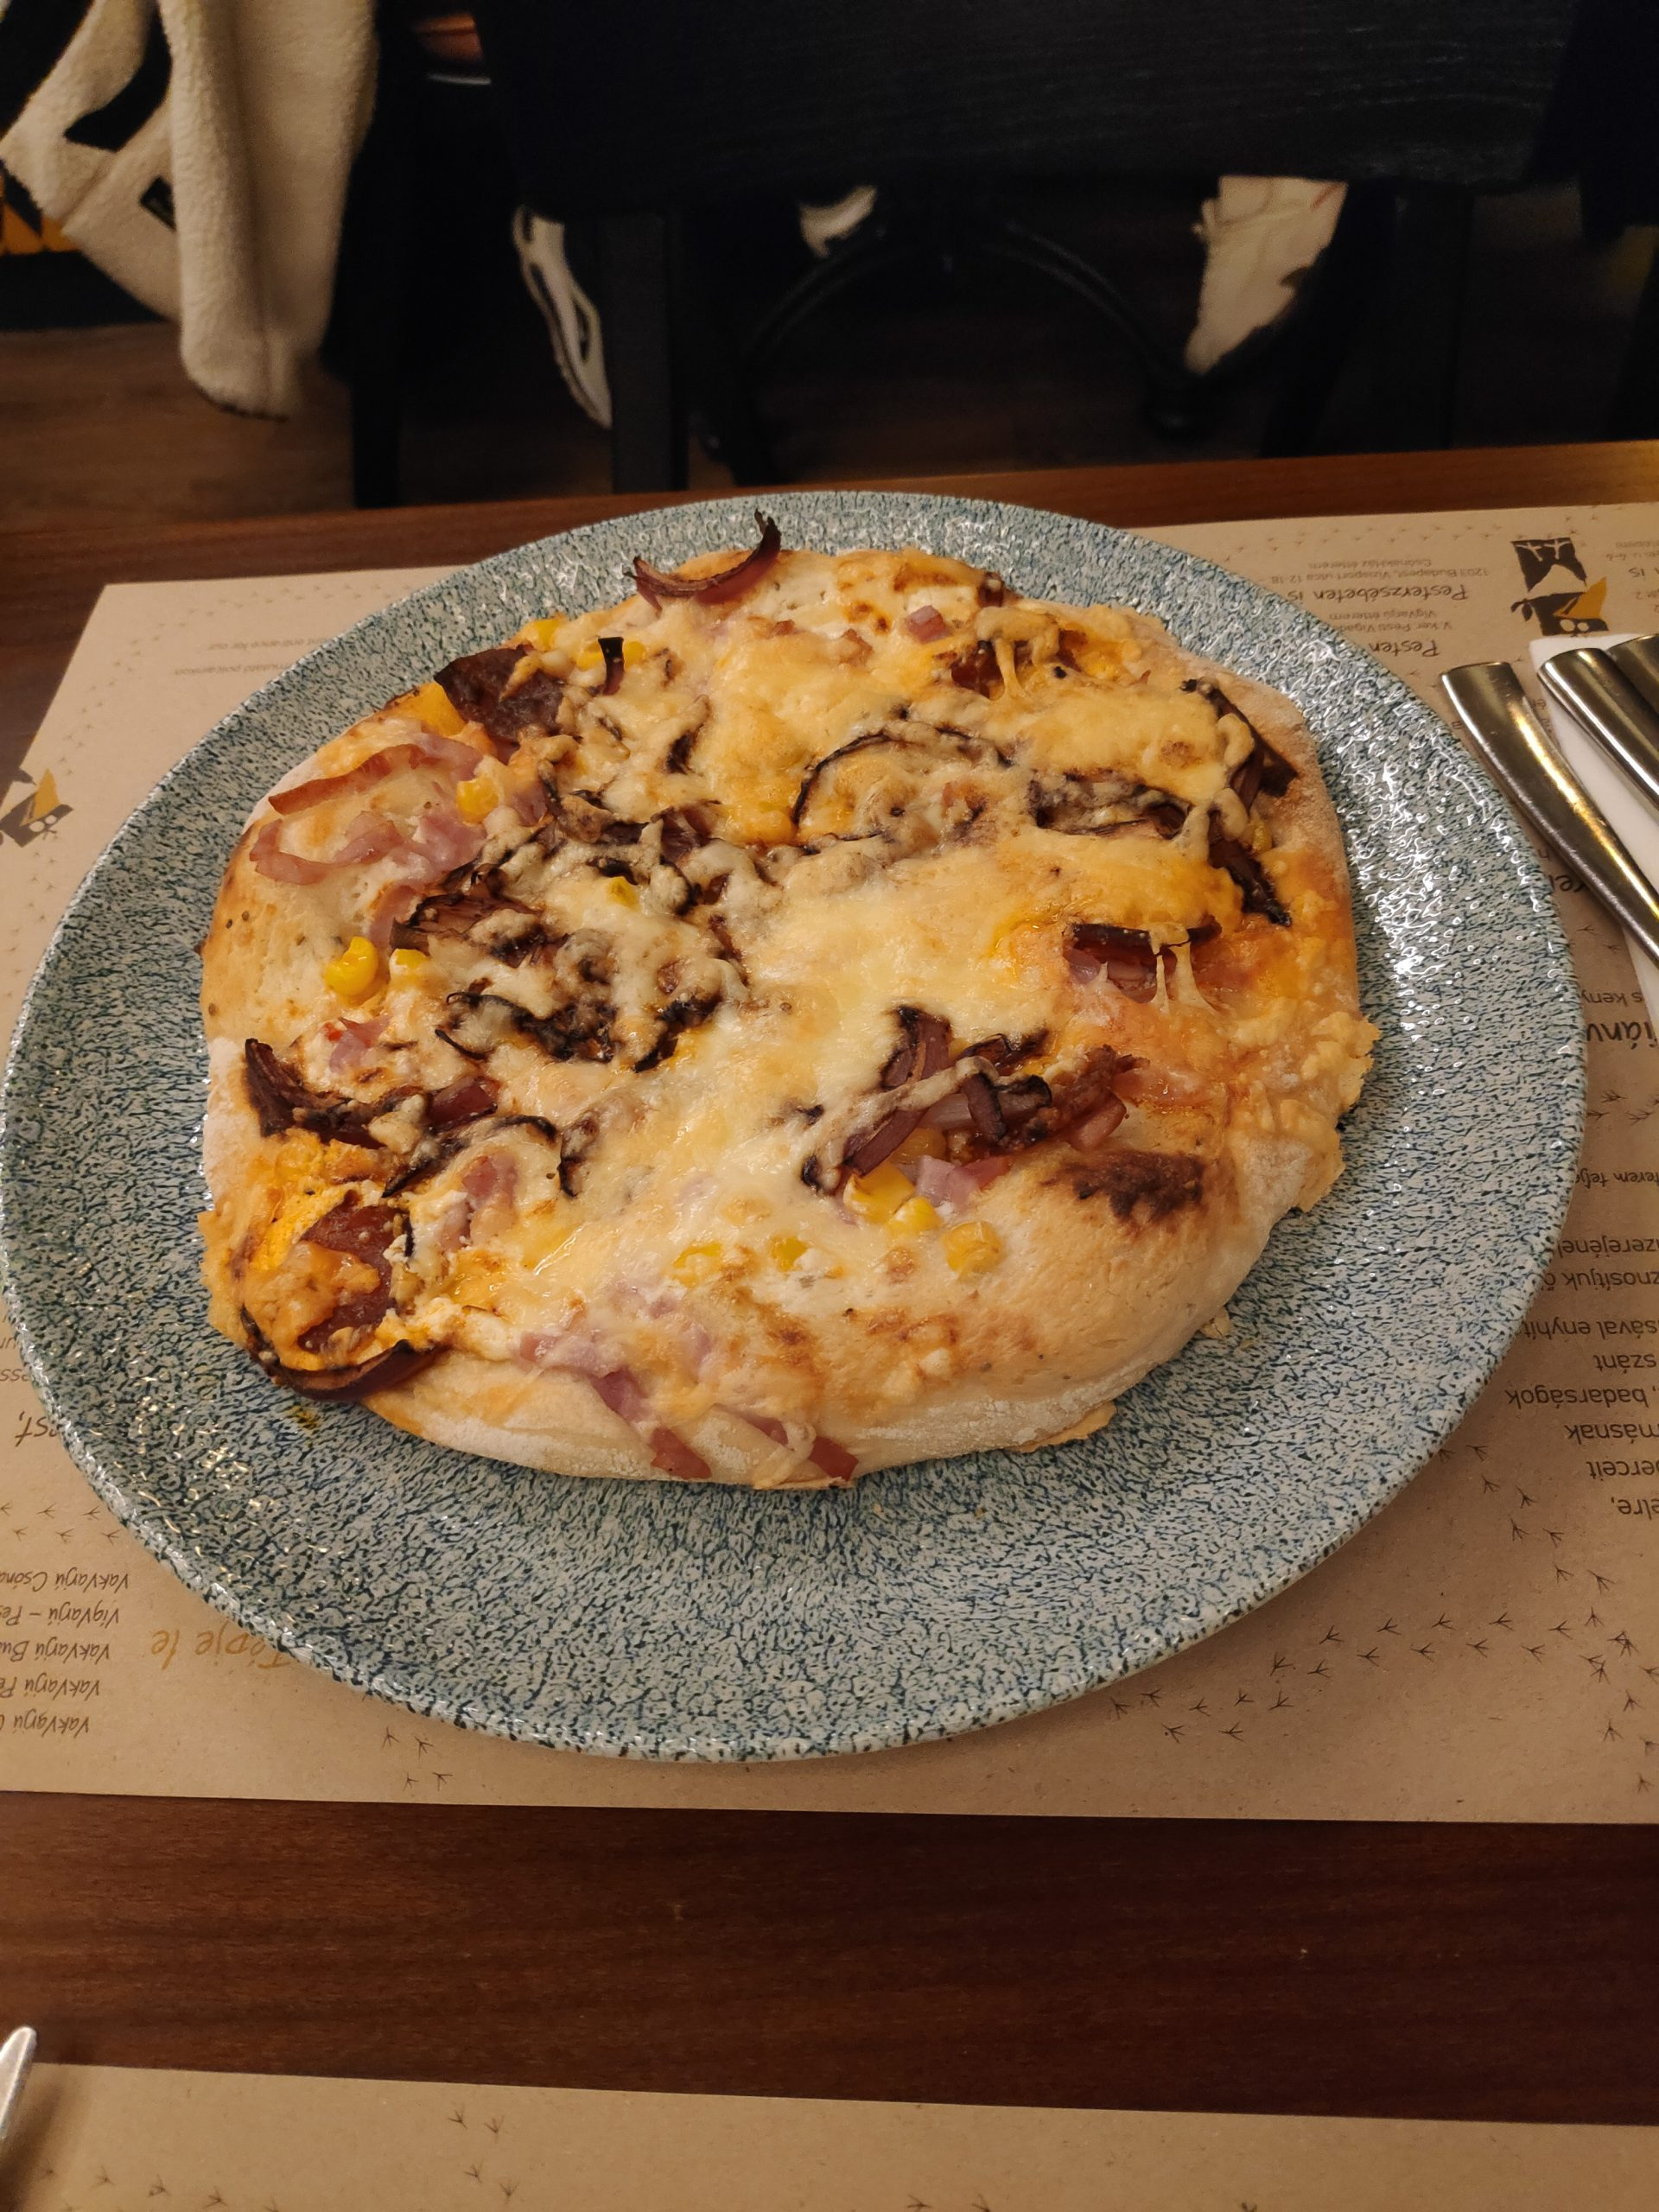 It's actually not pizza (yea, whatever), but traditional dish called Langos. Its basically deep fried bread with some pizza toppings. We tried different ones, with mushrooms, cheeses and bacon, over the days. Definitely very good.